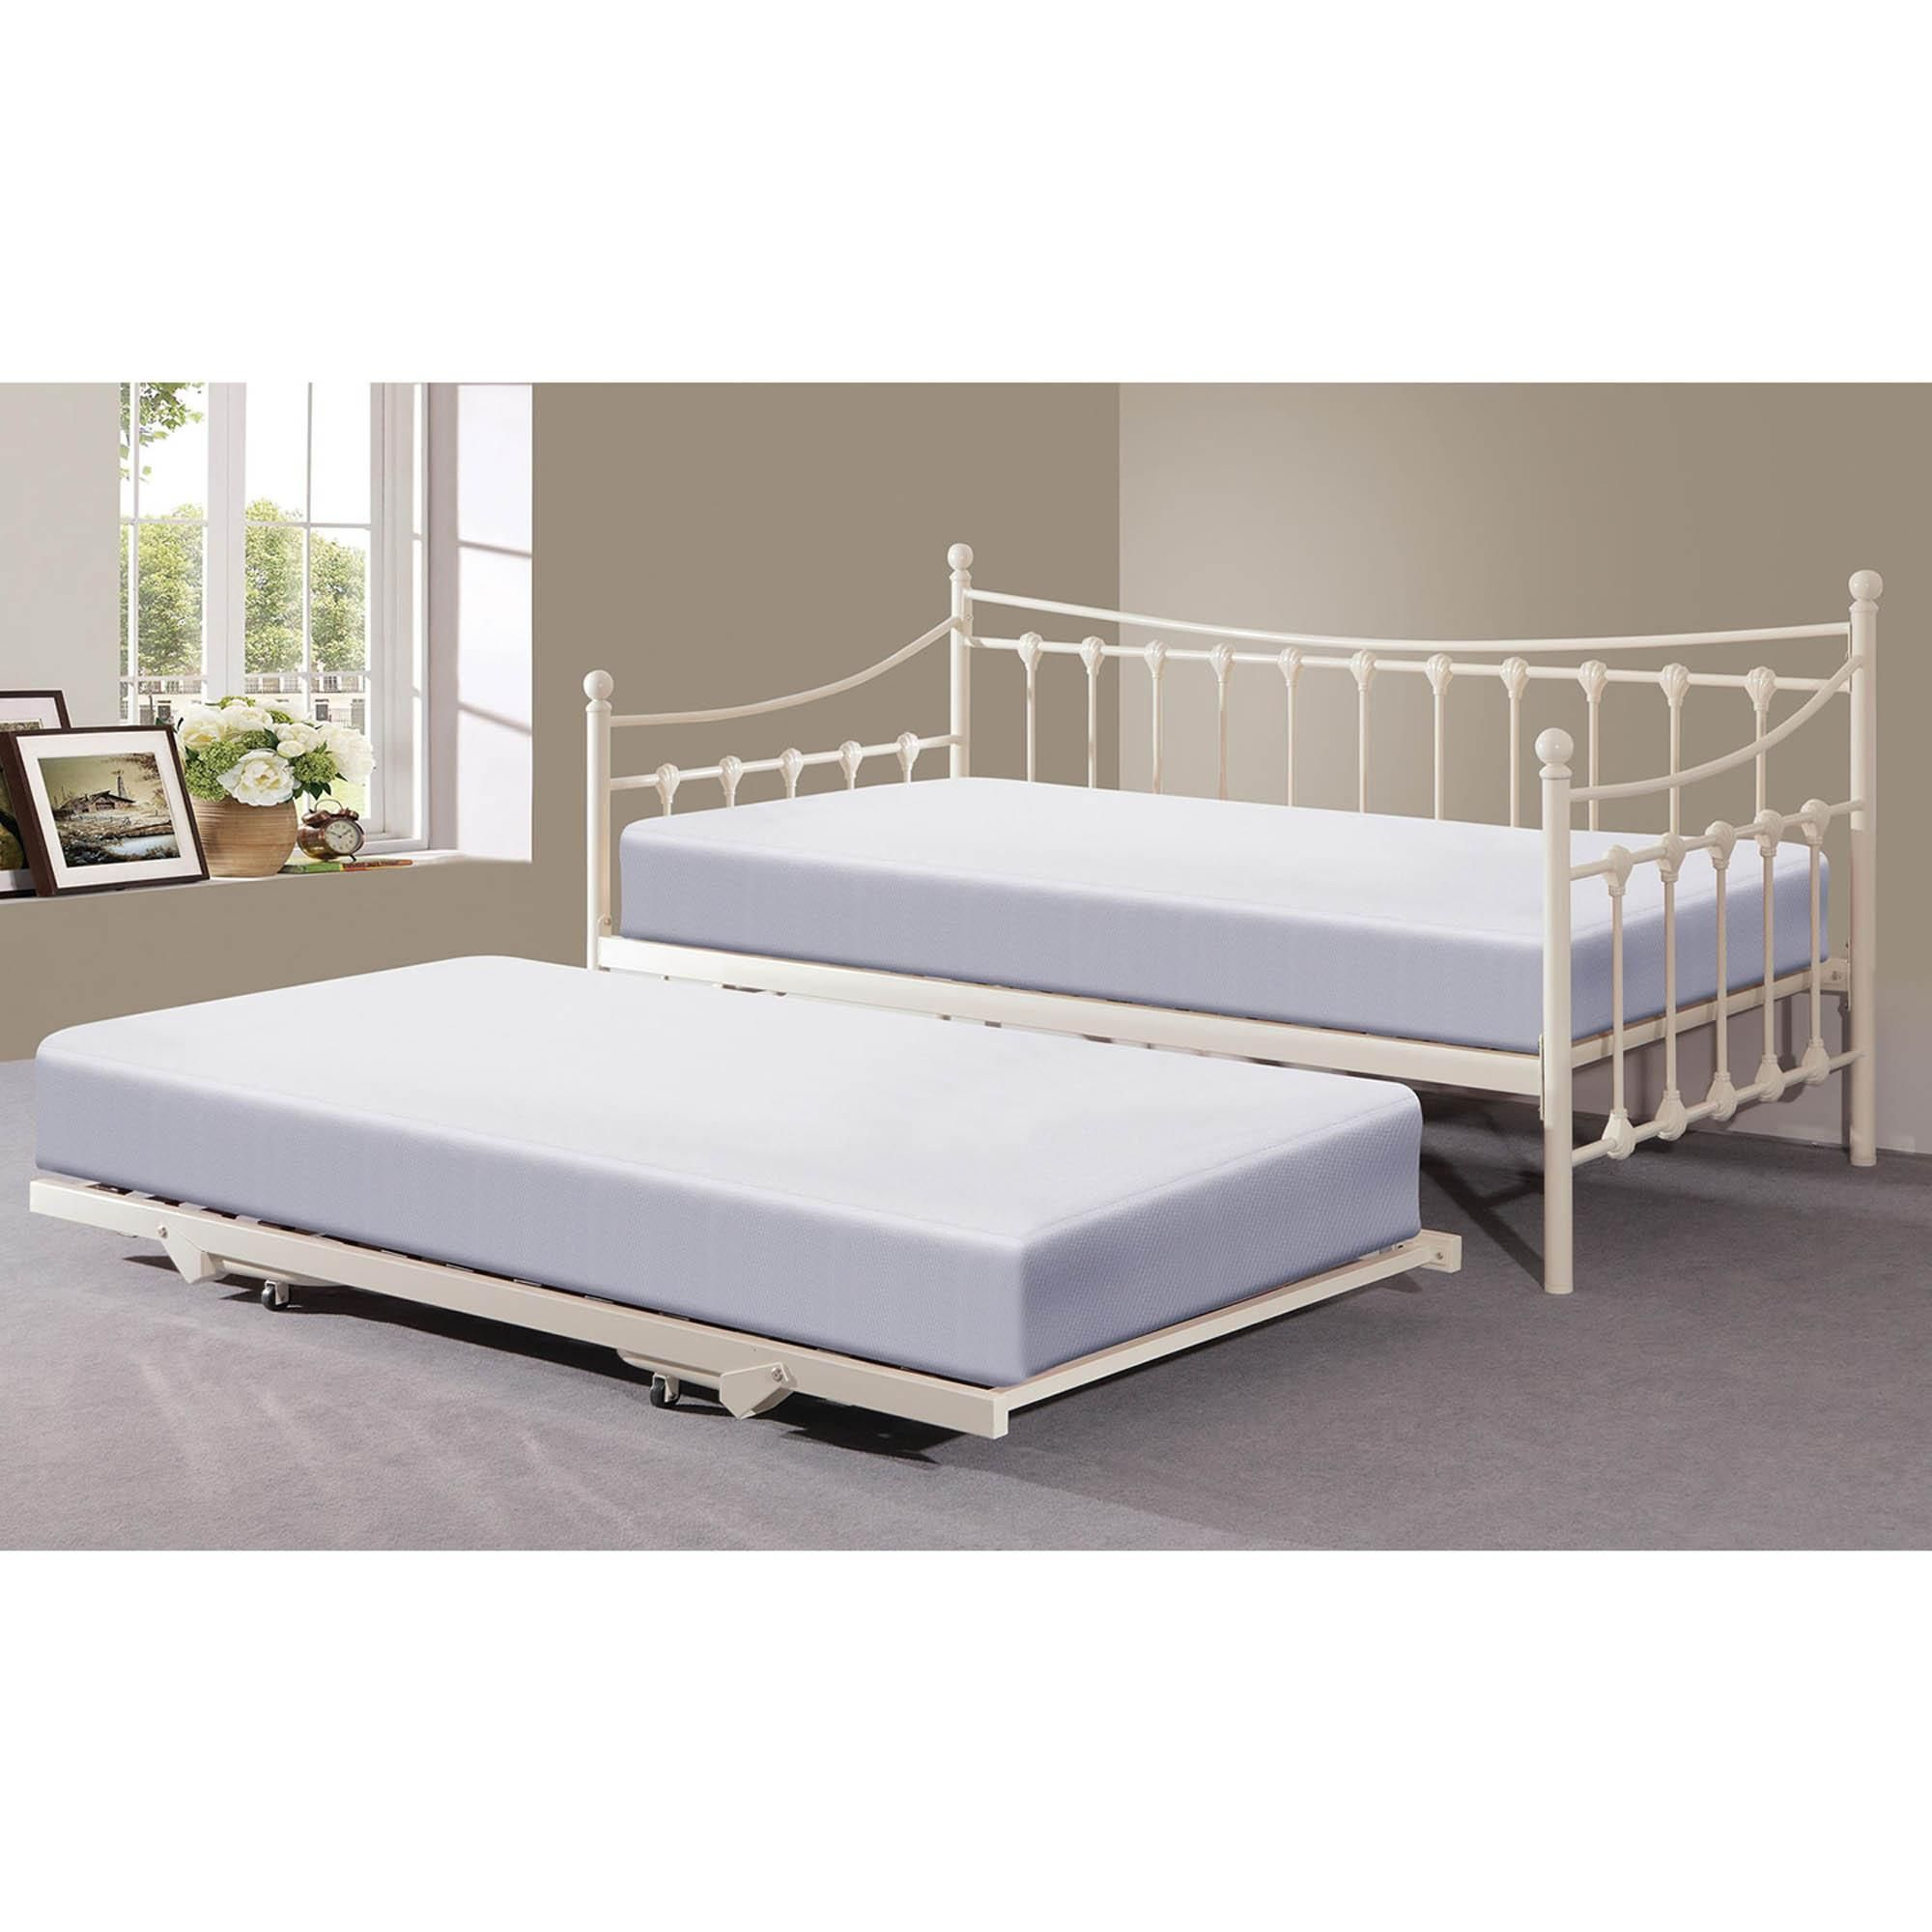 Memphis Black Day Bed With Trundle In 2020 White Daybed With